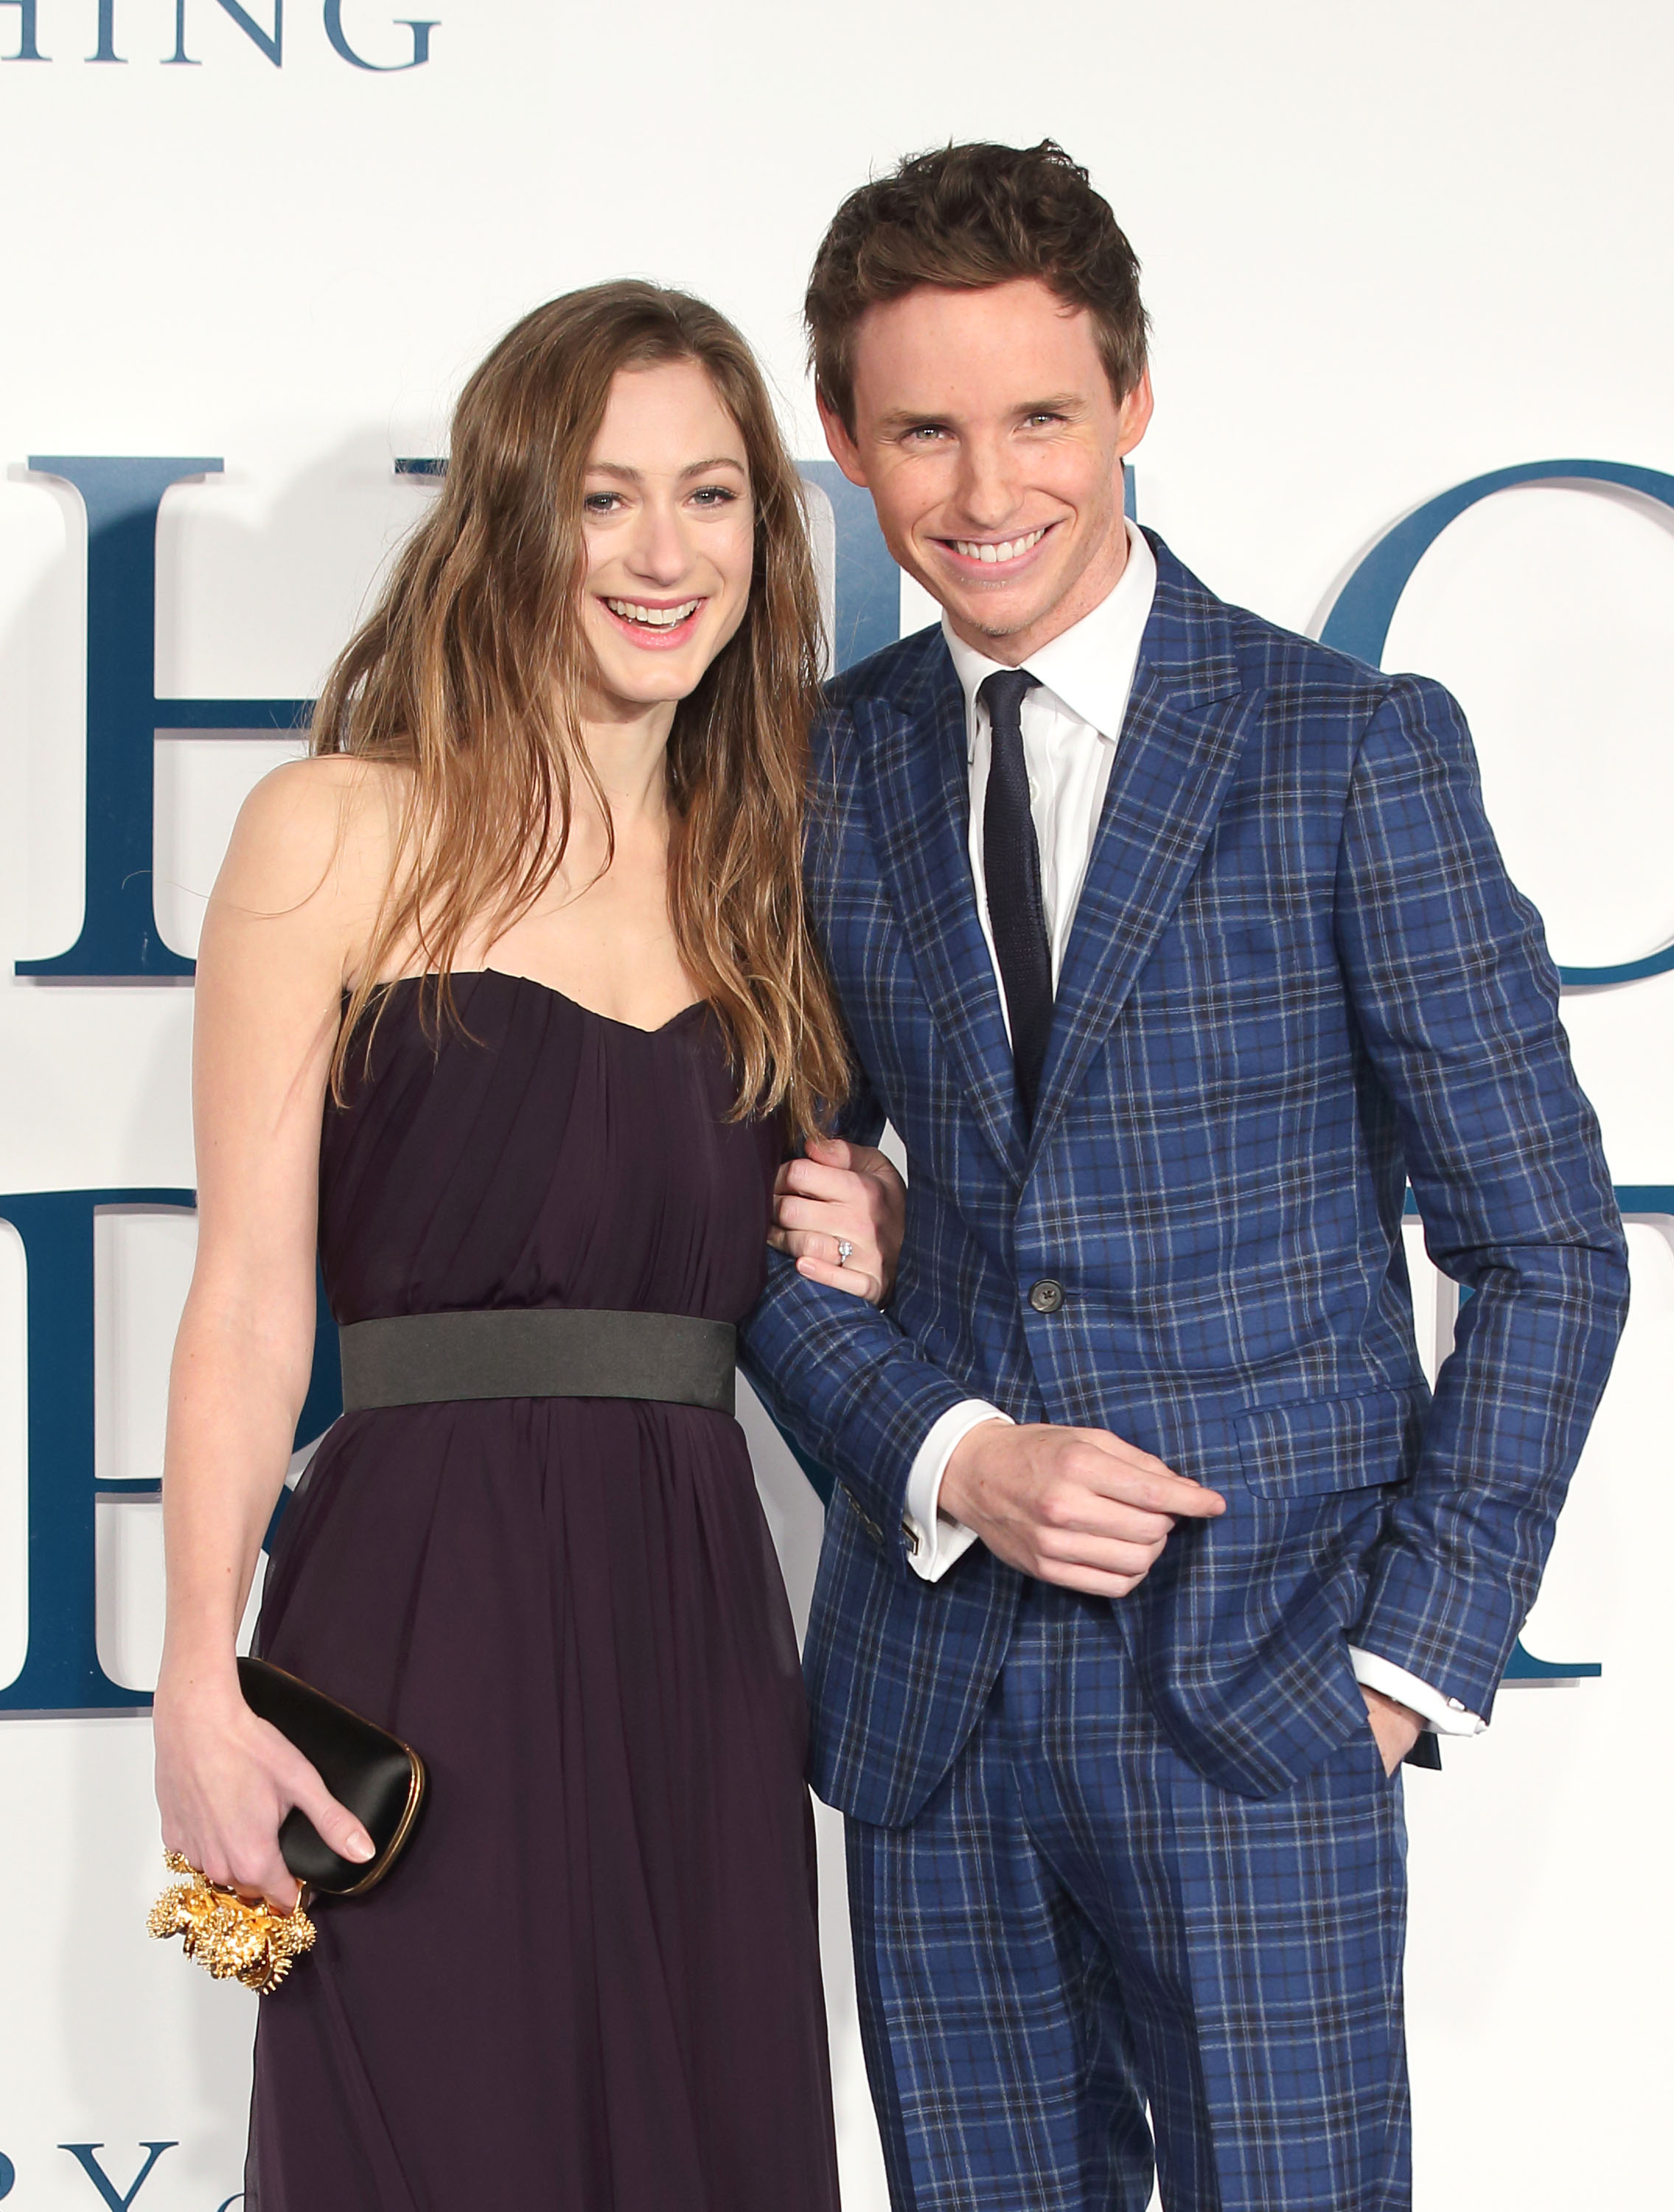 Actor Eddie Redmayne and Hannah Bagshawe at the UK Premiere of  The Theory Of Everything  on Dec. 9, 2014.